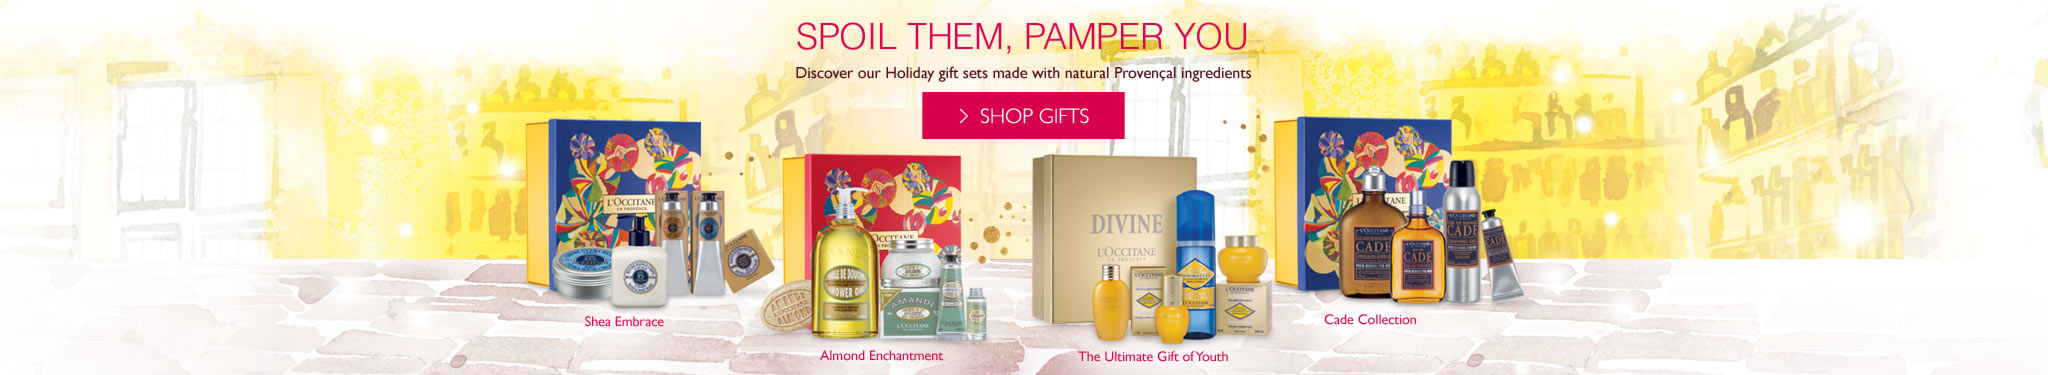 Spoil them, pamper you discover our holiday gift sets made with natural provencal ingredients